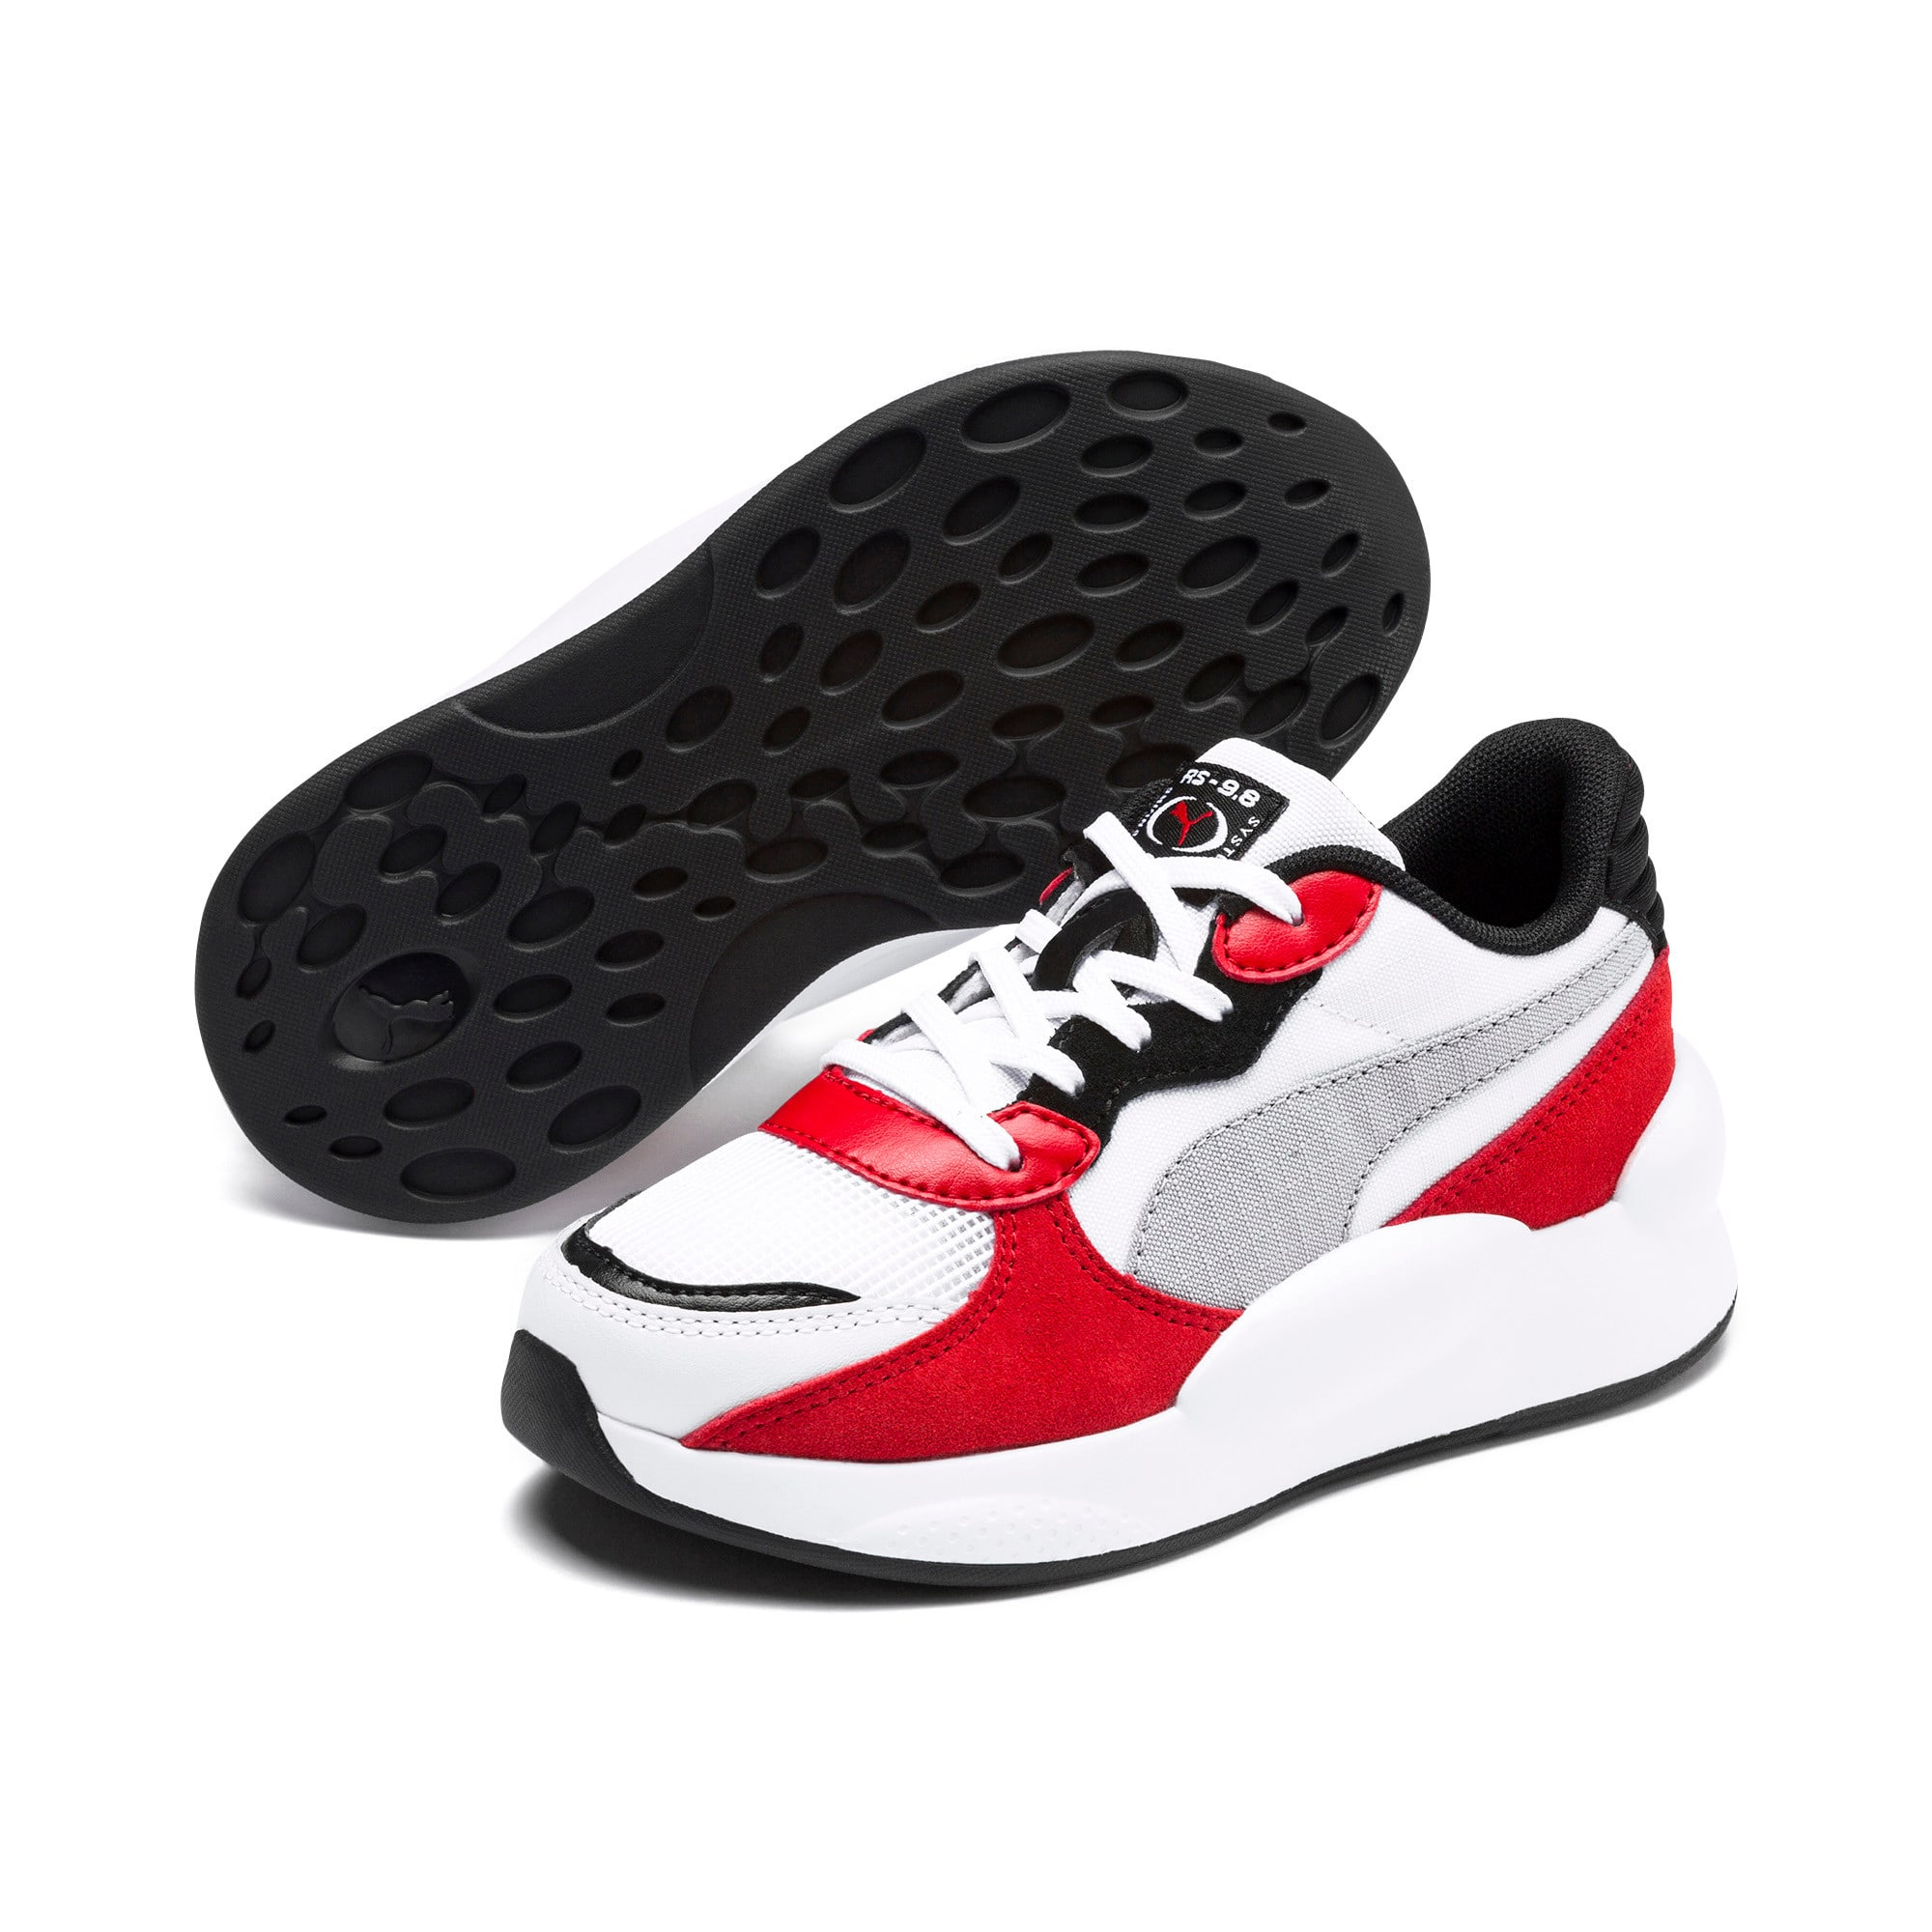 Thumbnail 2 of RS 9.8 Space Kids' Trainers, Puma White-High Risk Red, medium